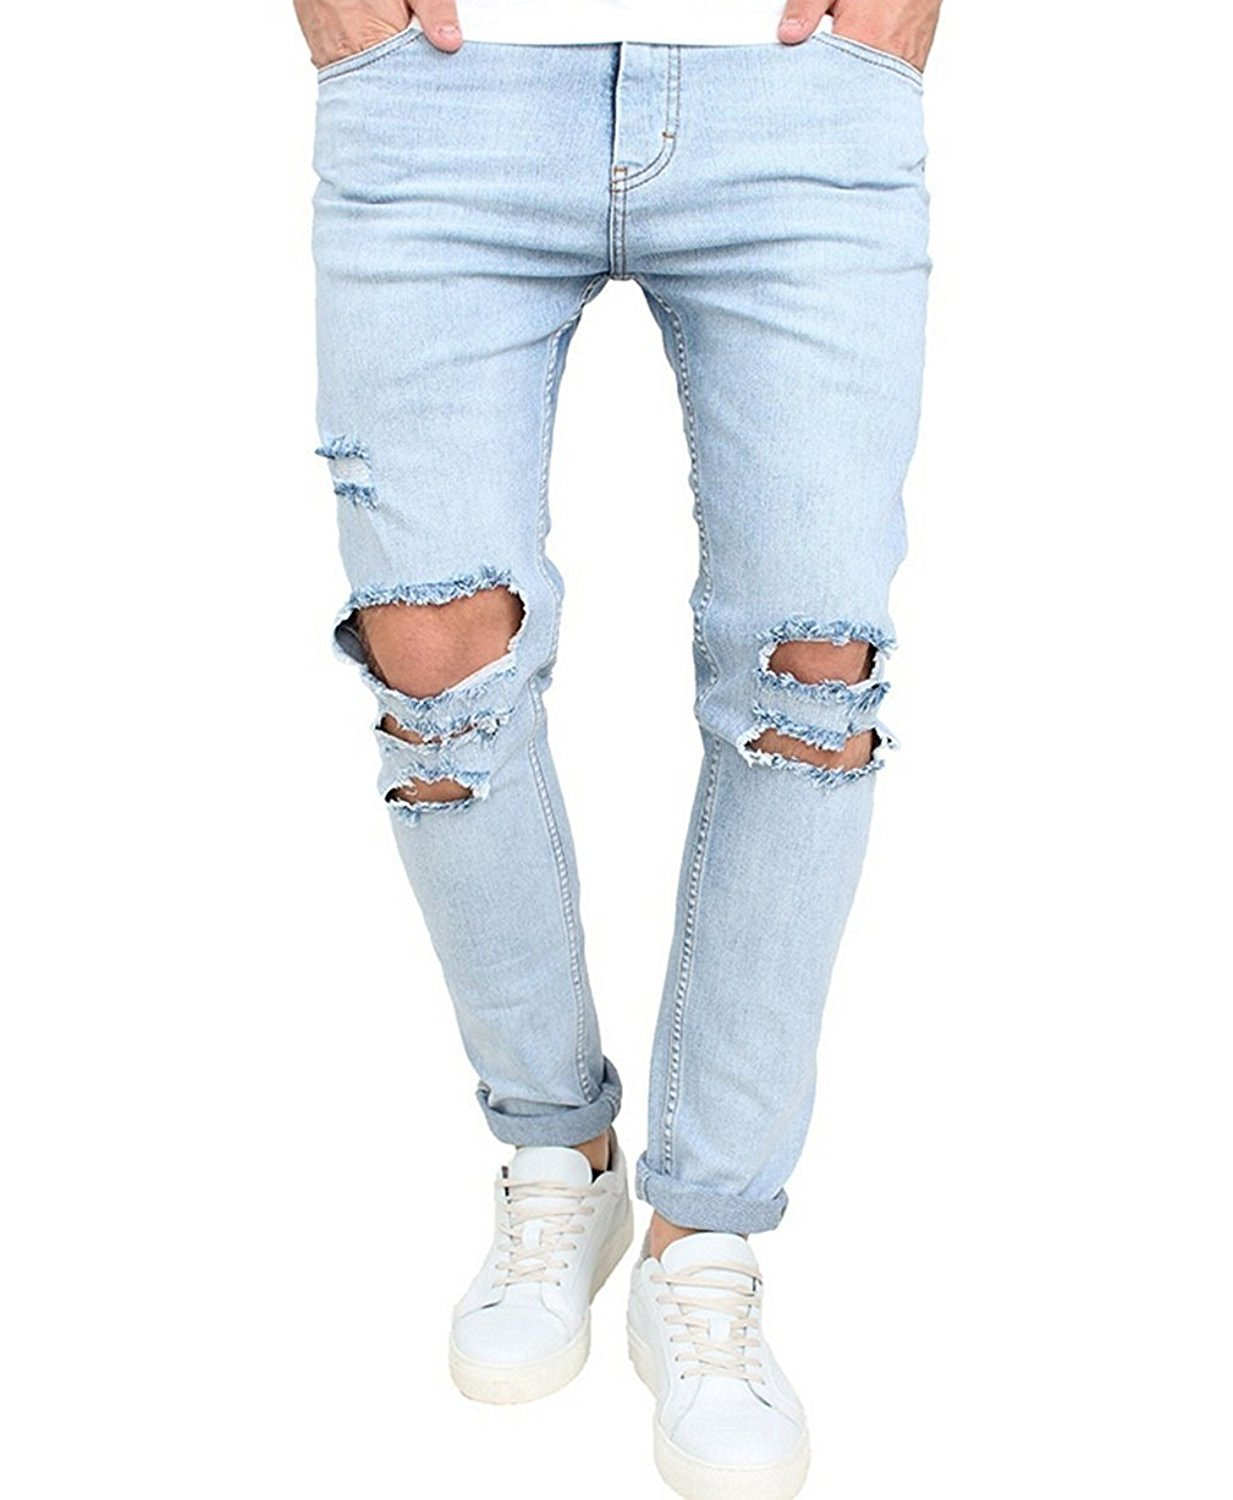 TOPING Fine Fashion;Handsome Men's Skinny Ripped Washed Jeans Destroyed Knee Holes Denim Broken Light Blue Pants As Picture28